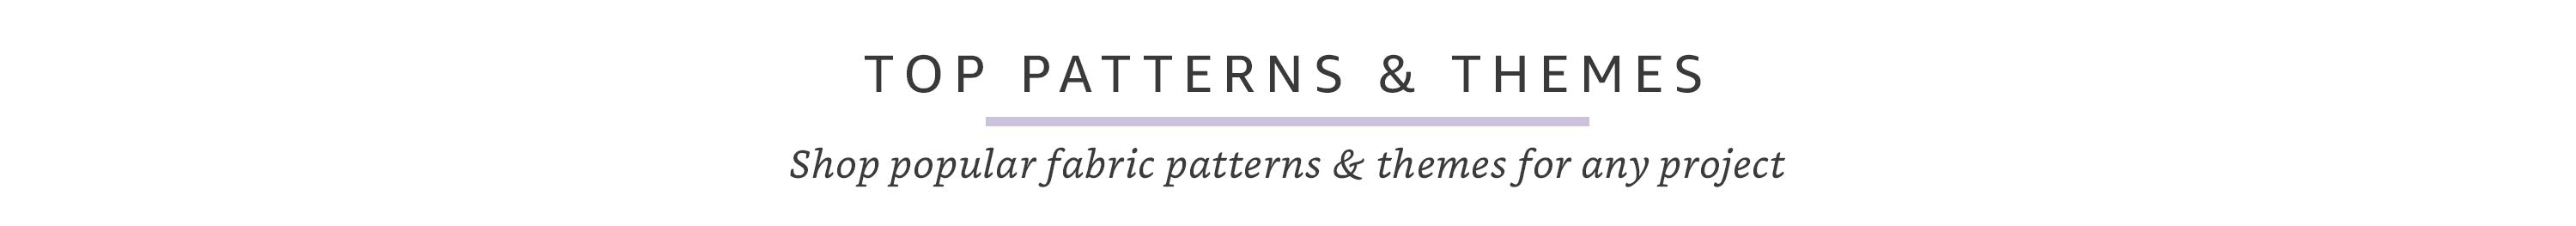 Top Patterns and Themes - shop popular fabric patterns and themes for any project